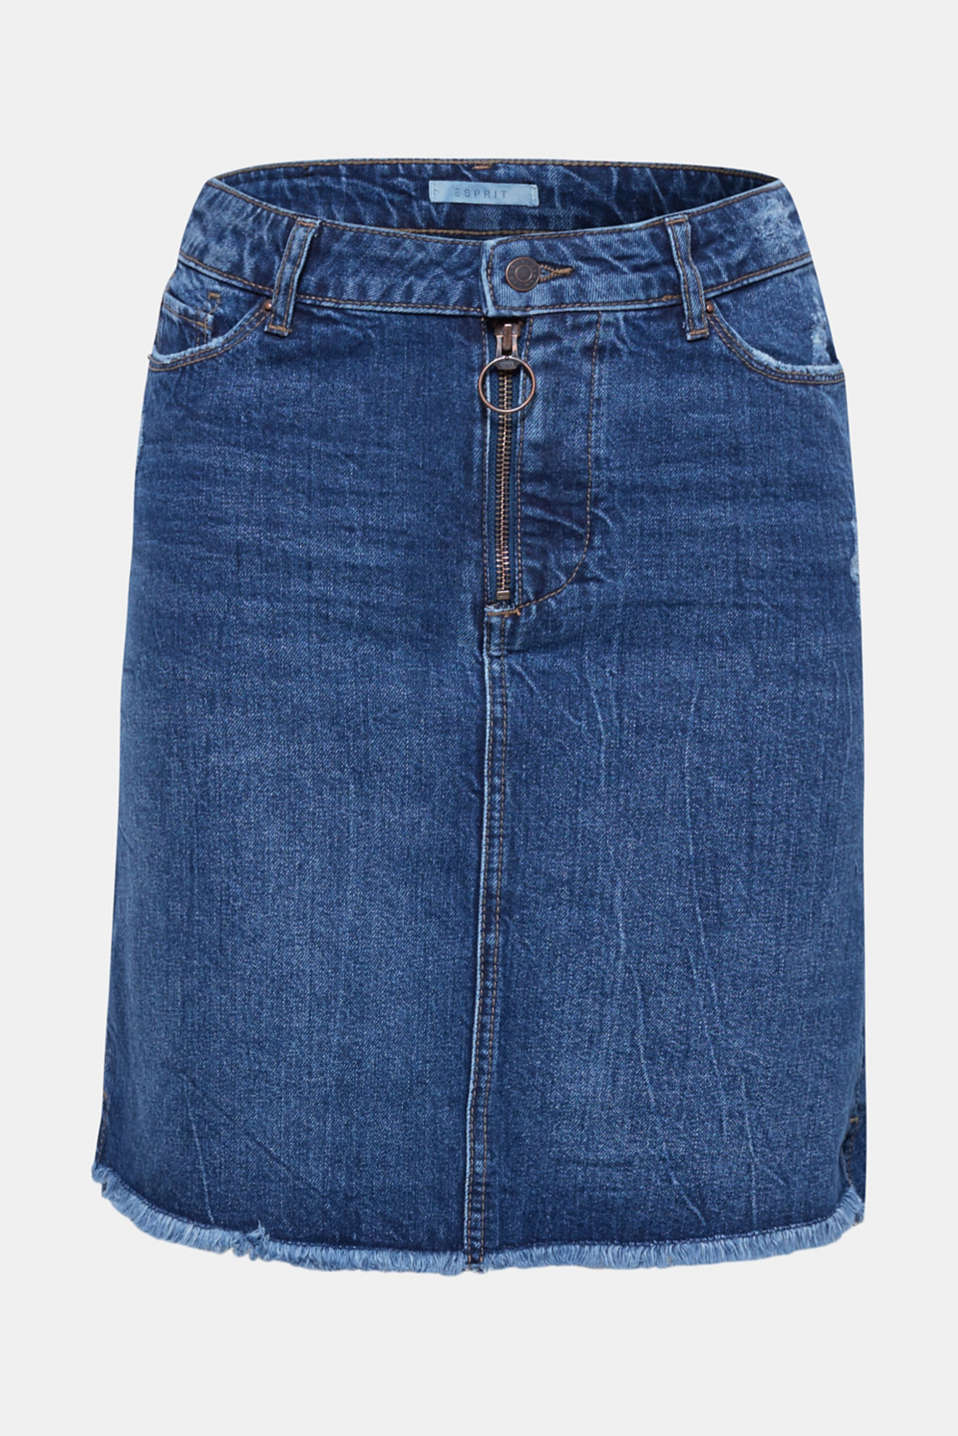 Denim, summery and airy? For sure. Try this short, stretch denim skirt with a flared silhouette and on-trend details for size!